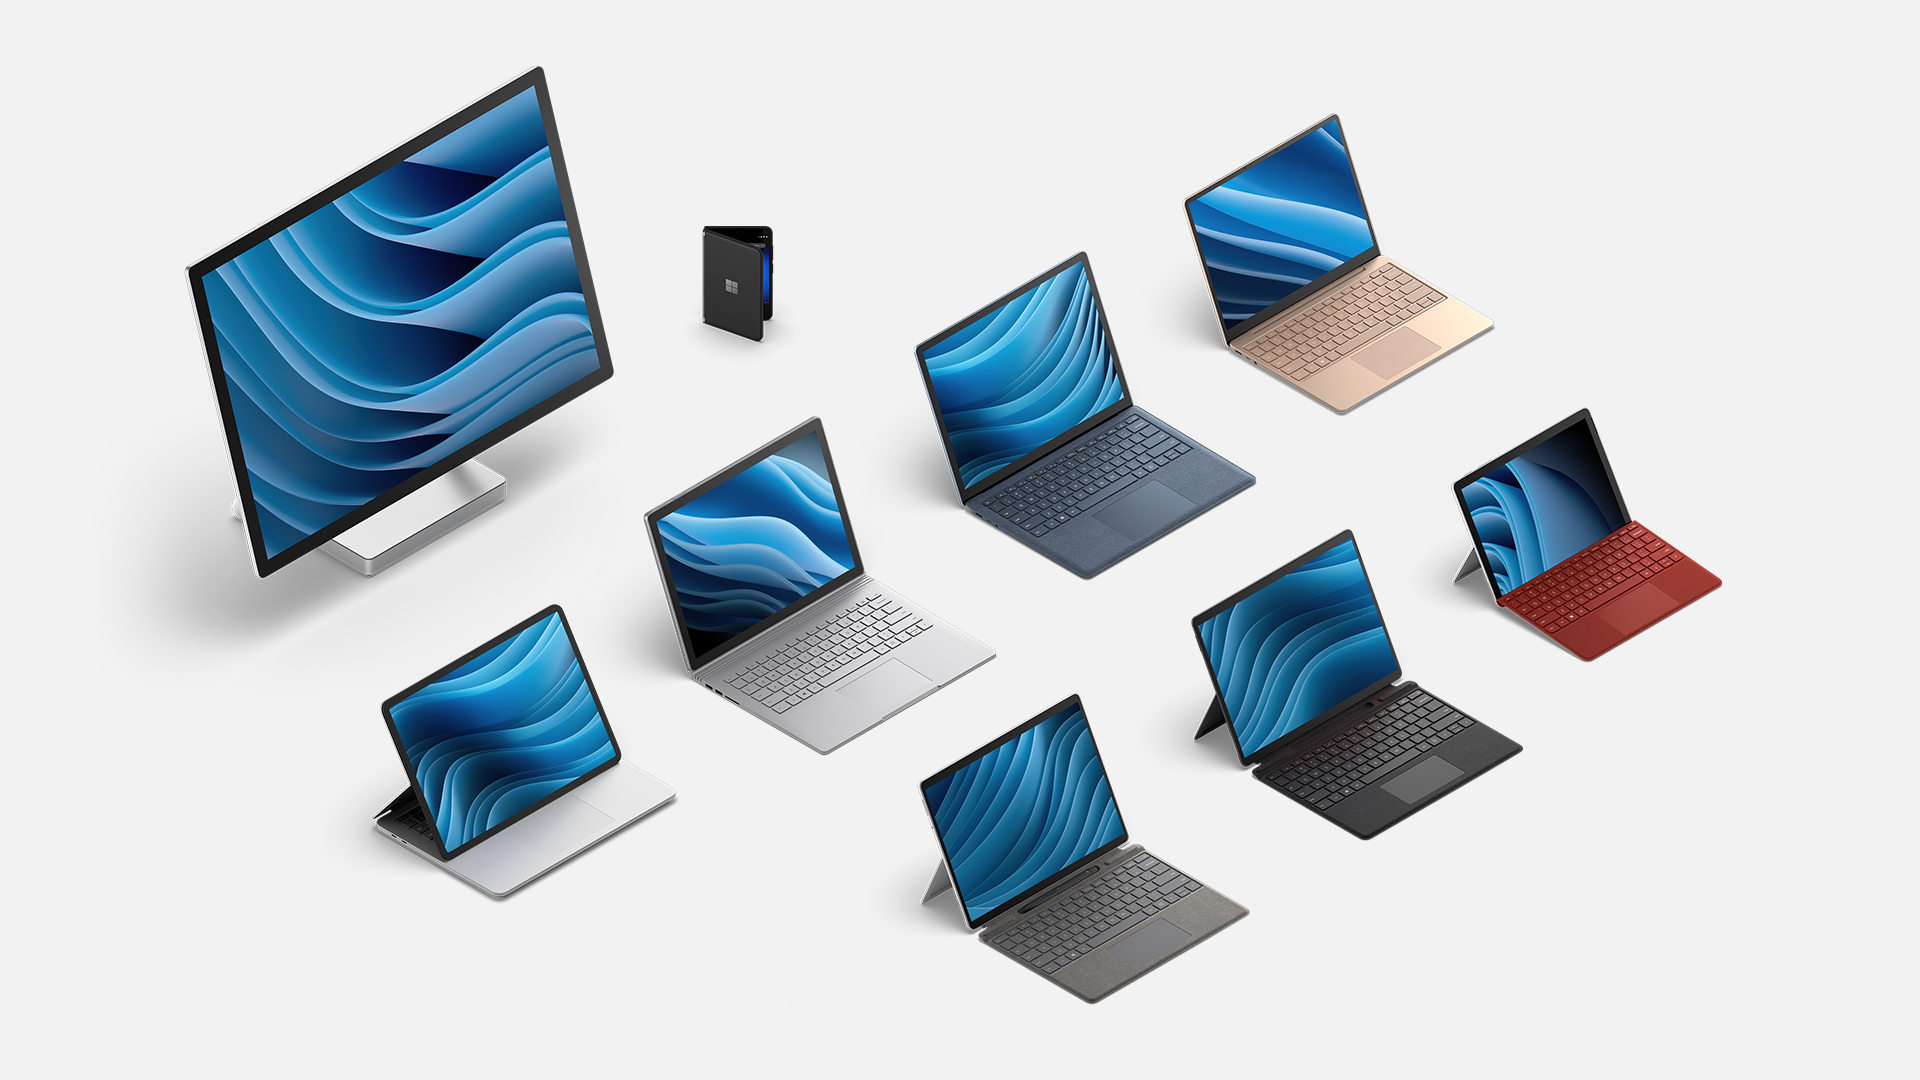 A collection of all Surface family devices.